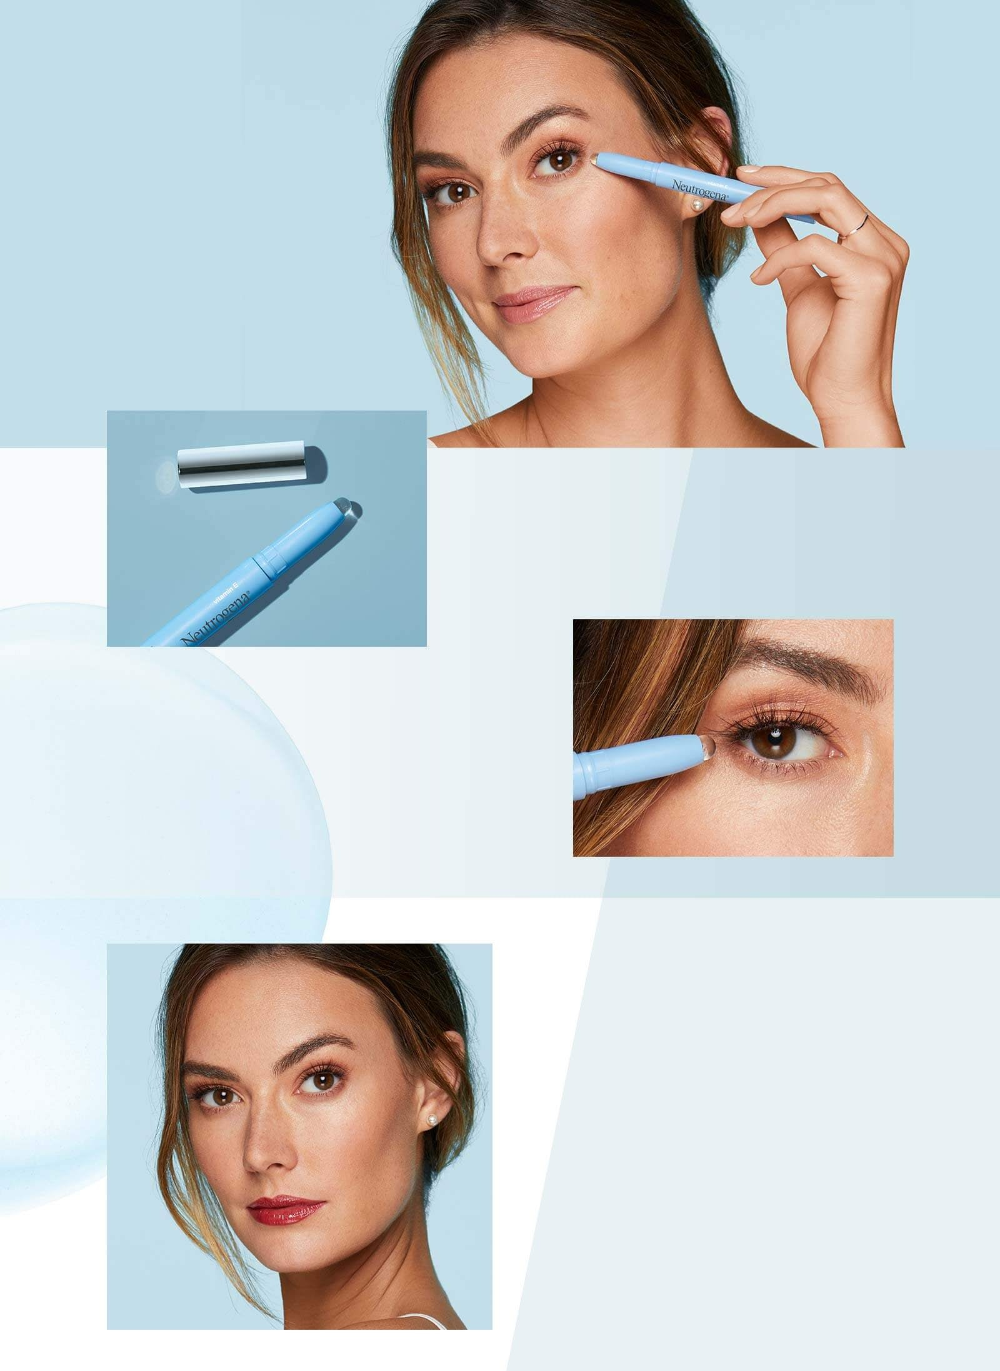 Makeup Remover Stick For Makeup Mistakes in 2020 (With